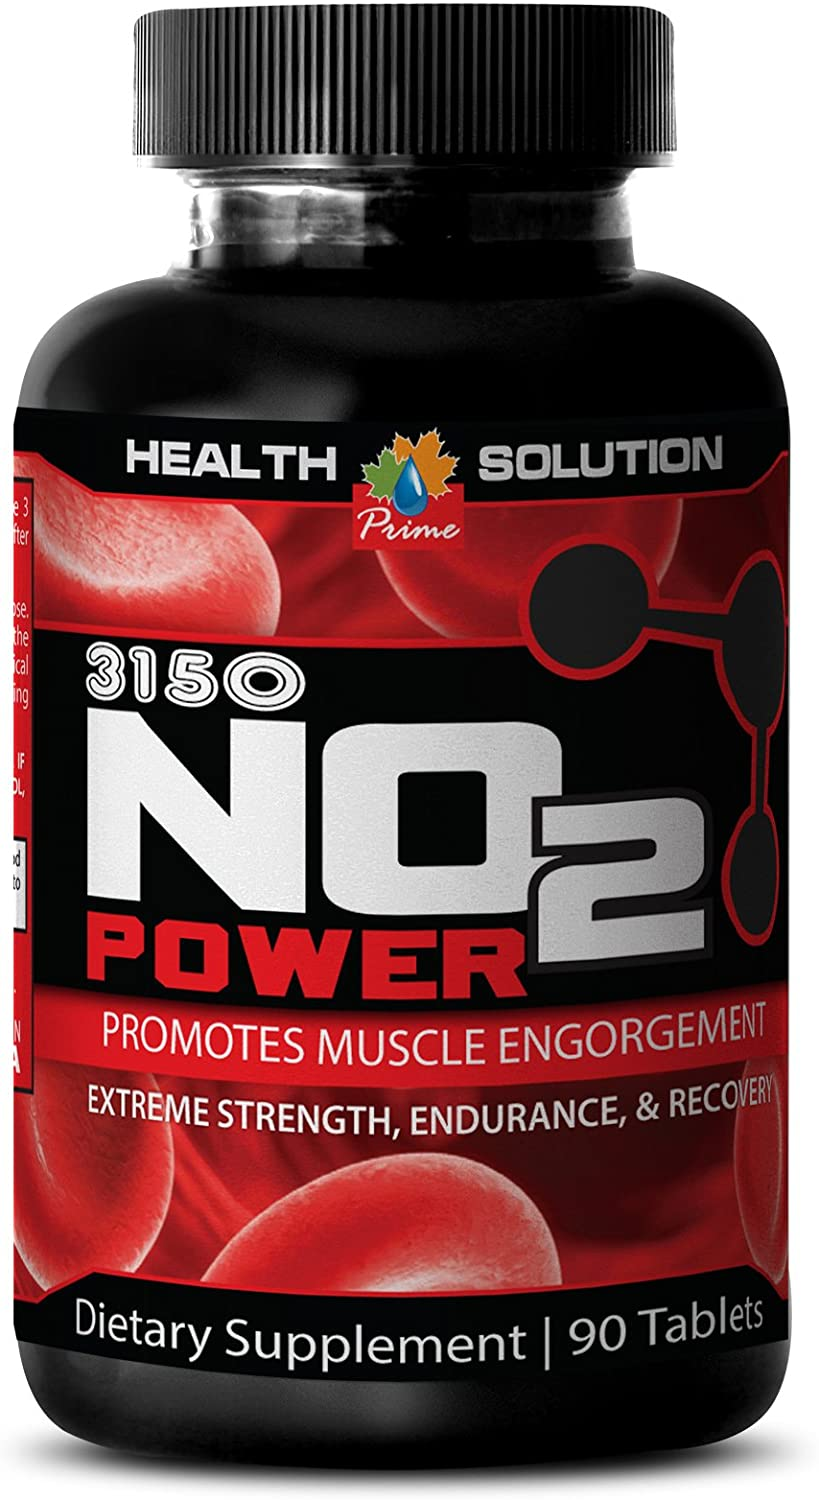 Energy Supplement Natural - Premium Natural Nitric Oxide 3150MG - Nitric Oxide arginine Supplements - 1 Bottle (90 Capsules)